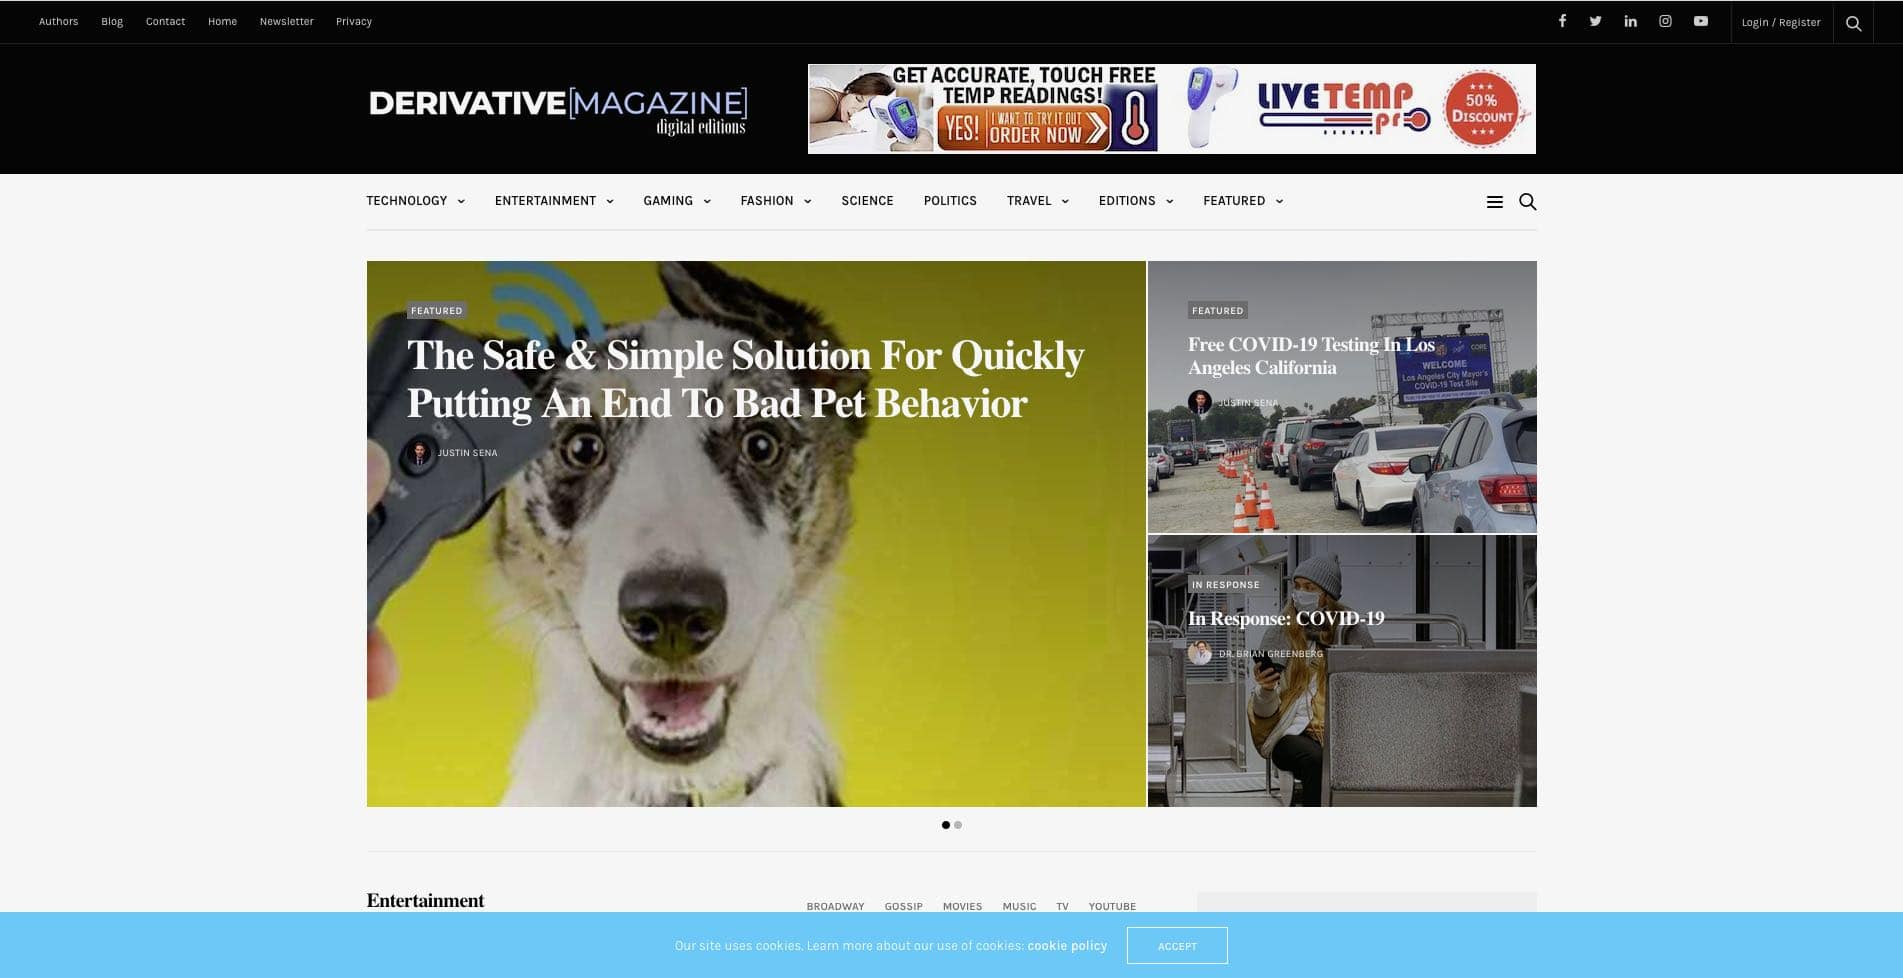 derivative magazine website design